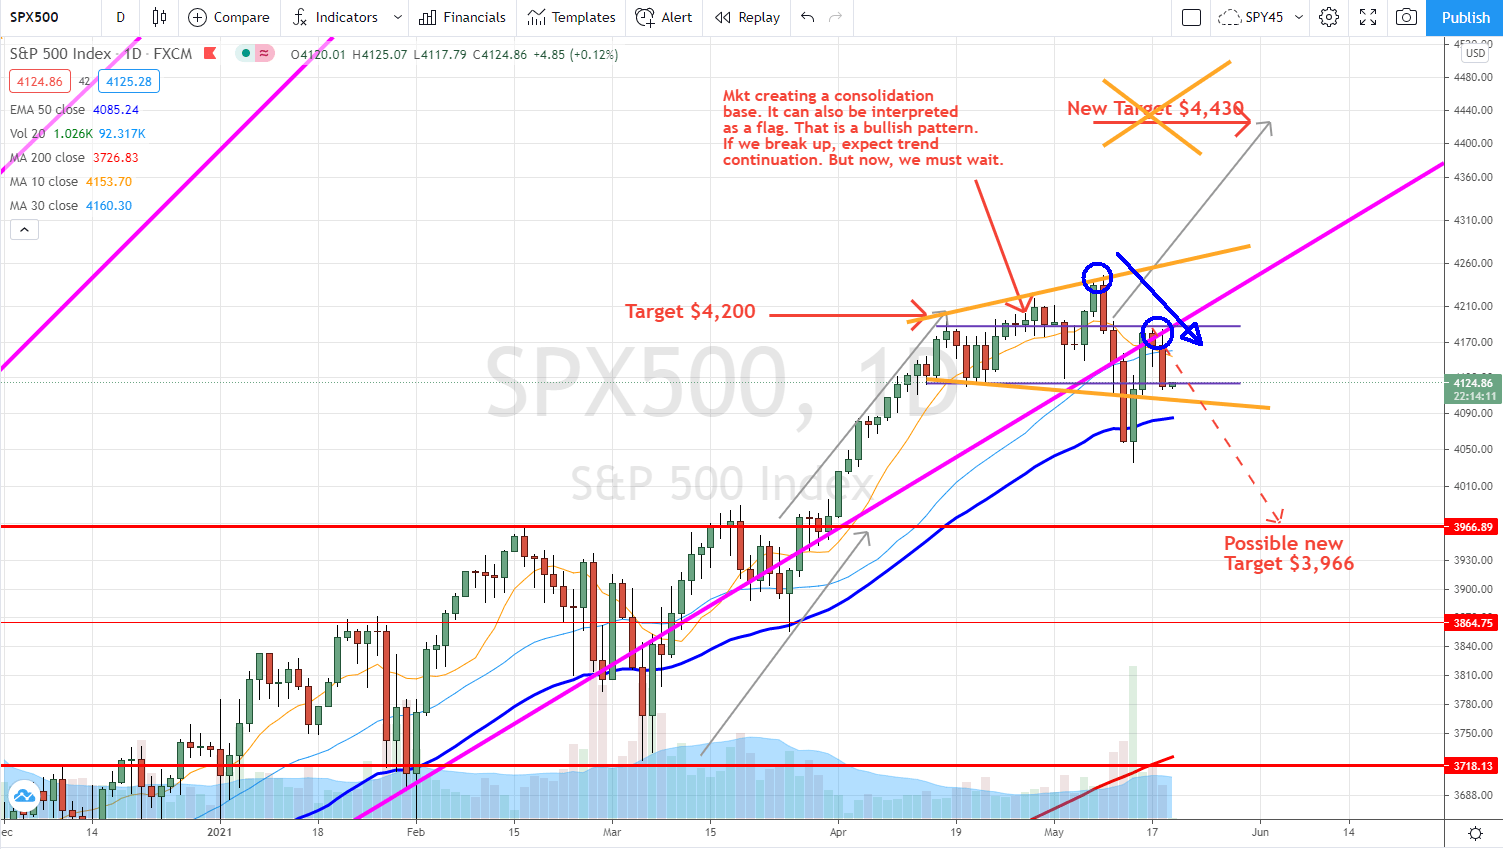 SPX market flashes sell